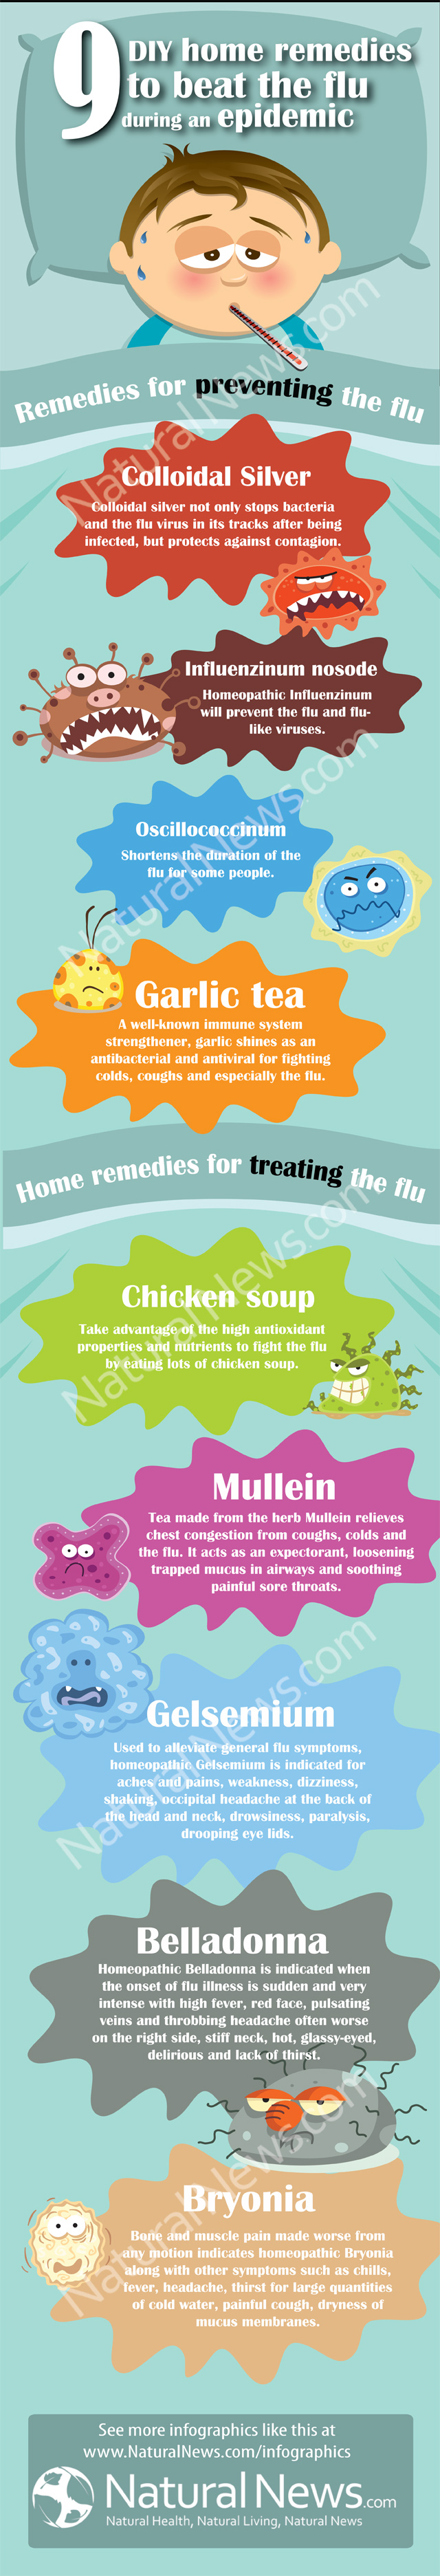 9 Do-it-Yourself Home Remedies to Beat the Flu During an Epidemic